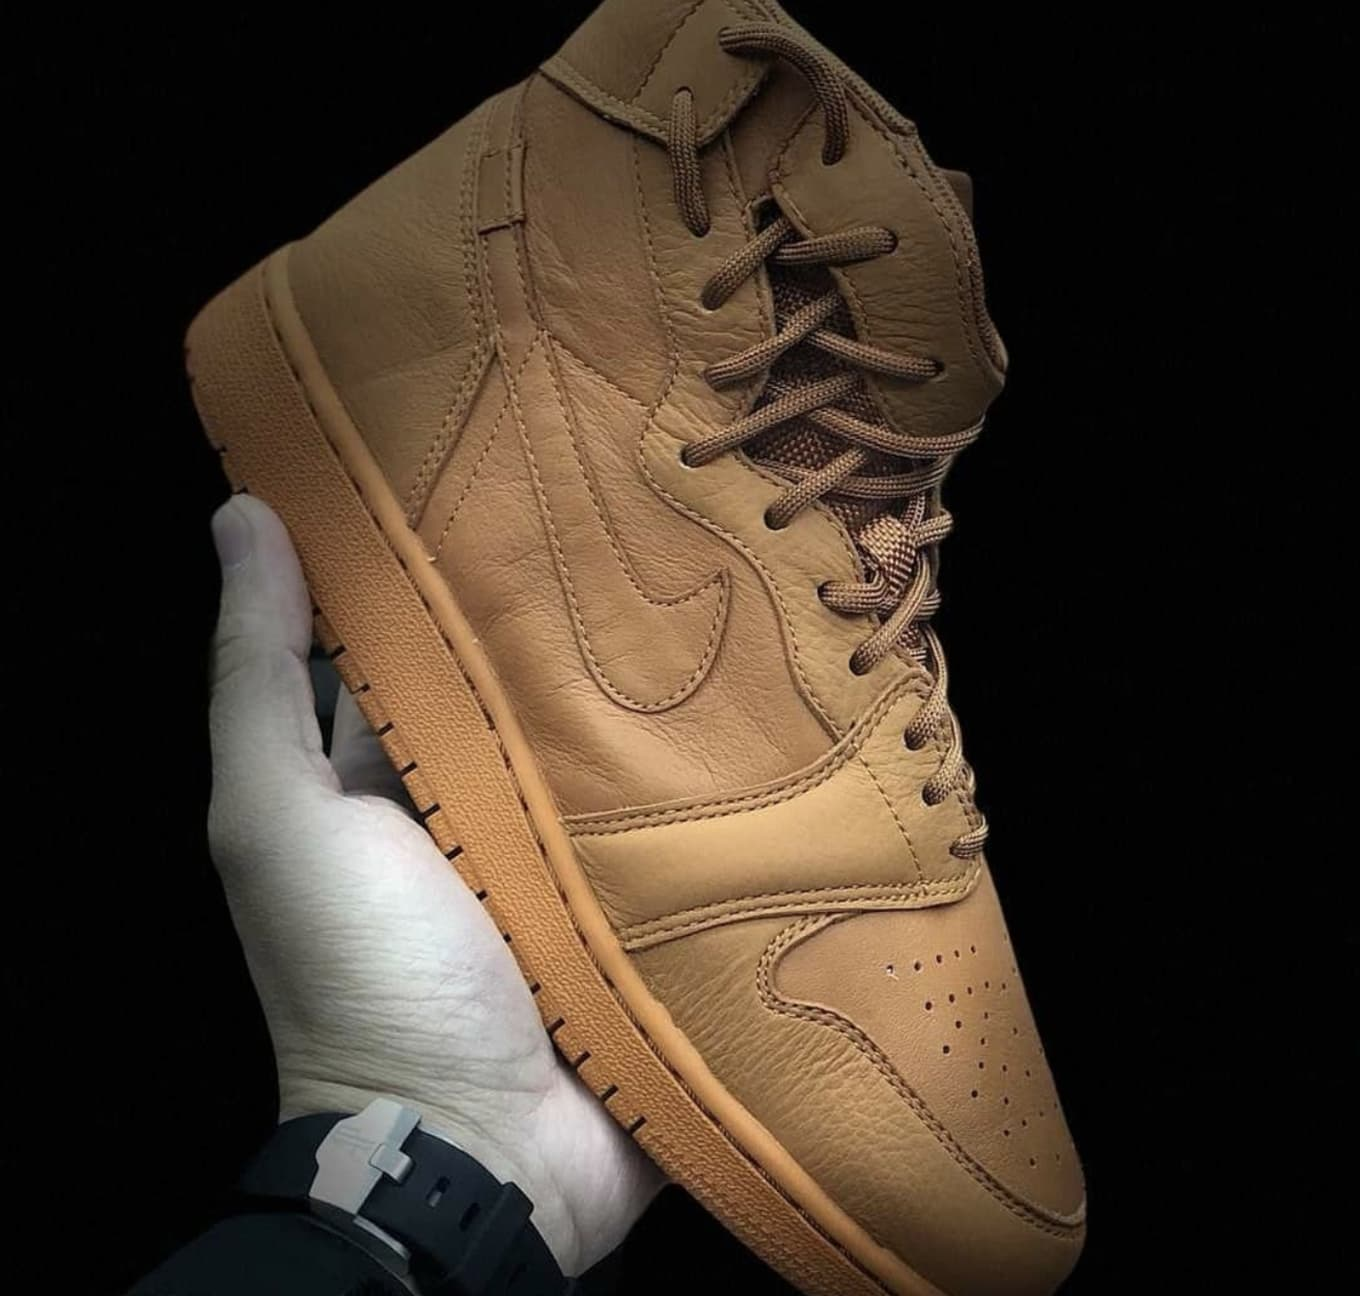 new styles 4a2d2 bb13f Air Jordan 1 Rebel 'Wheat' AO1530-800 Images | Sole Collector